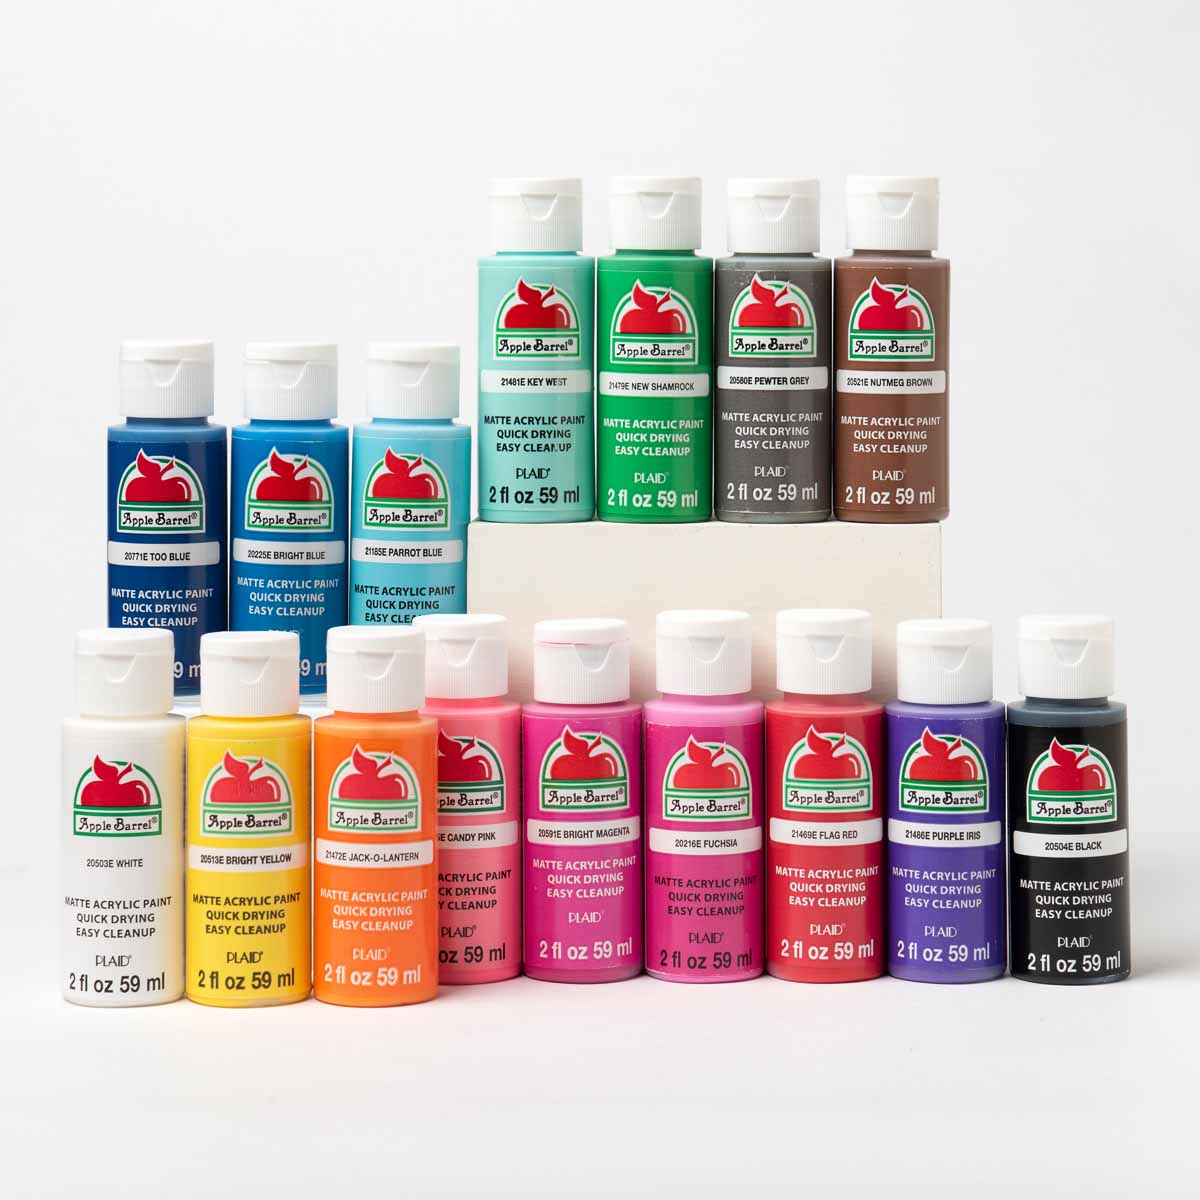 Apple Barrel ® Colors Acrylic Paint 16 Color Set - PROMOABIII